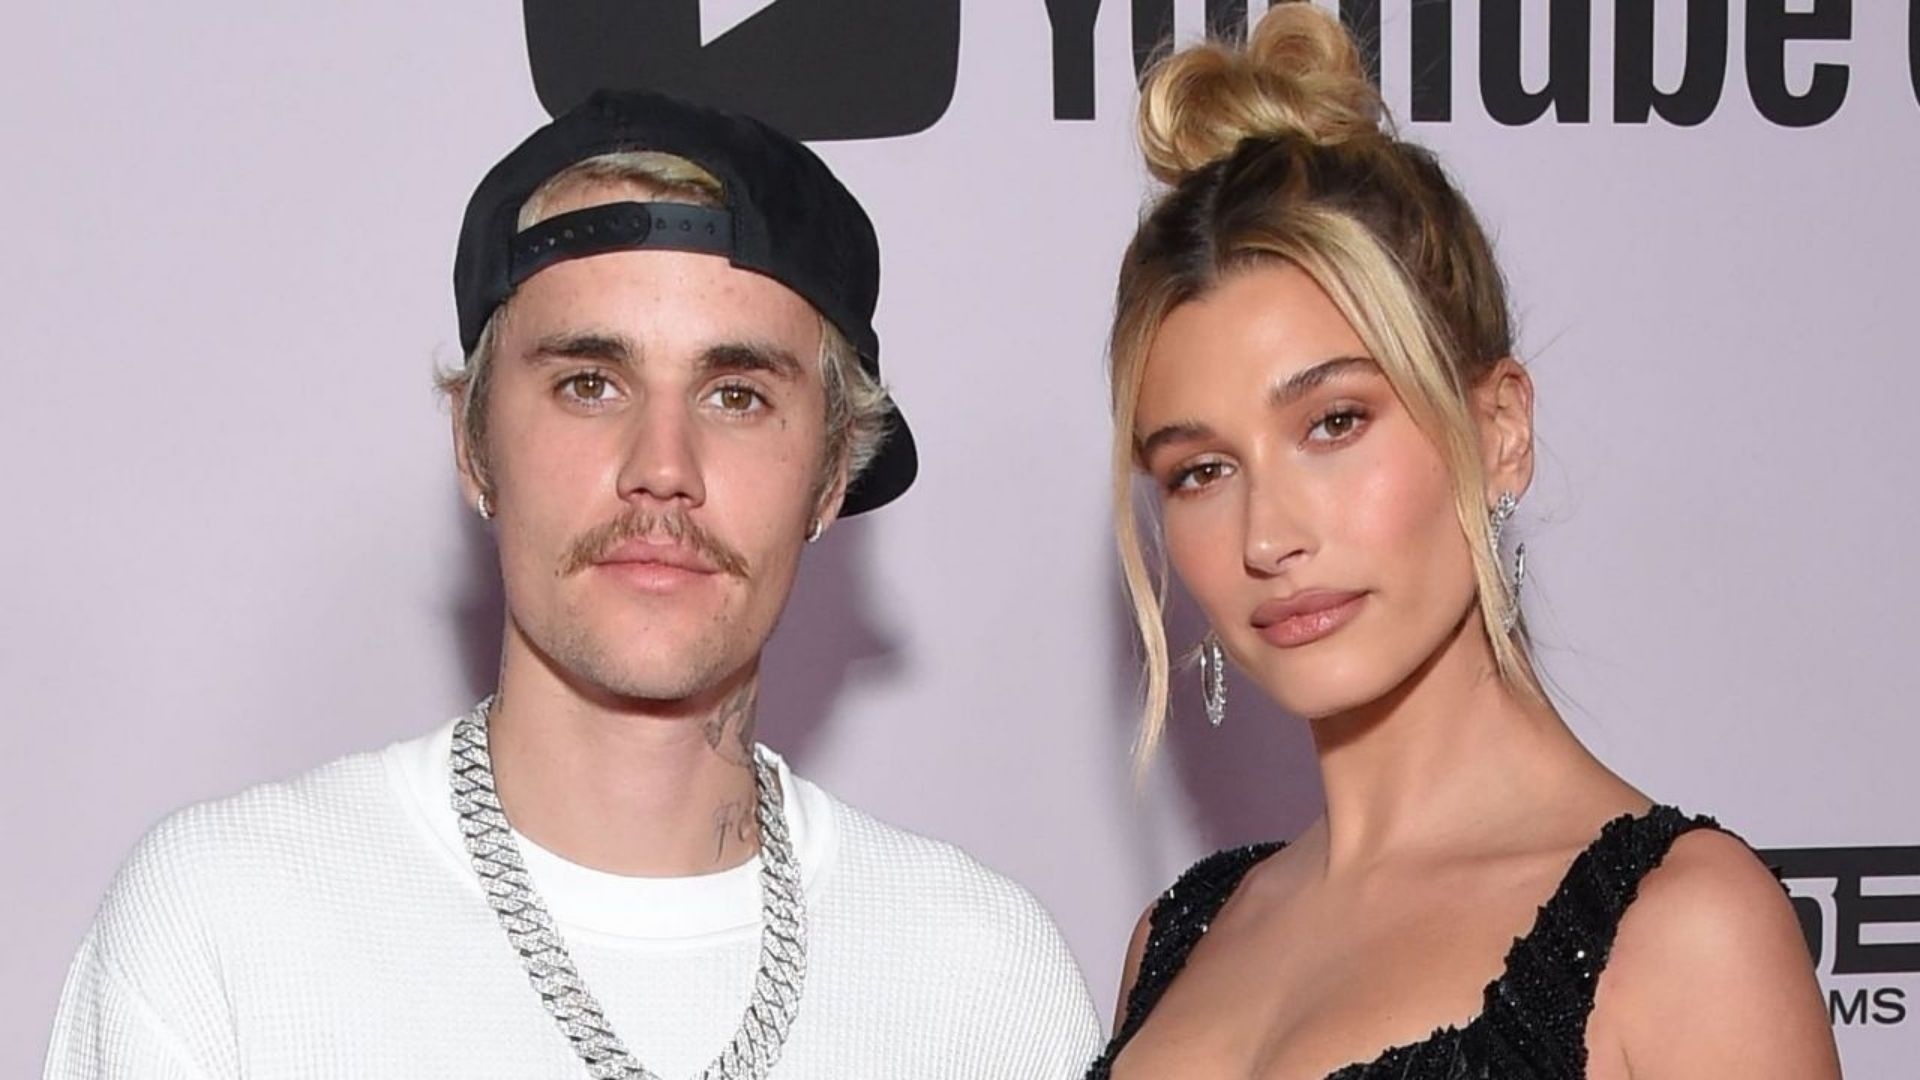 Justin Bieber Sparks Speculation That He and Wife Hailey Could Be Expecting First Child